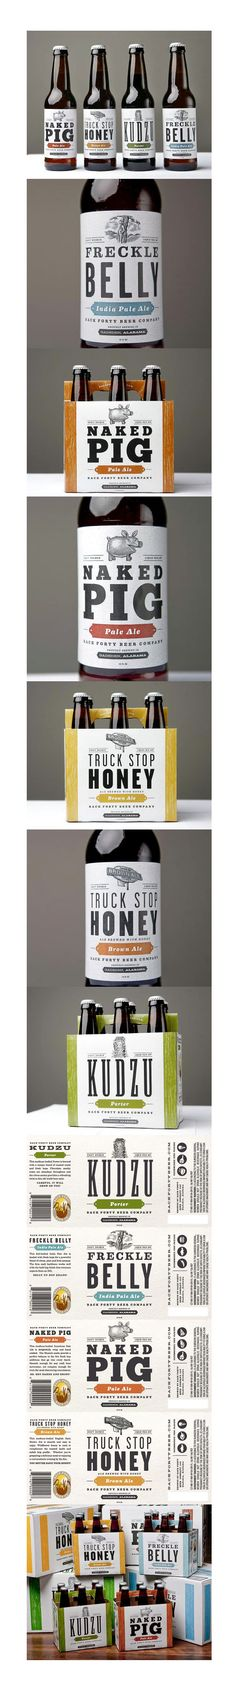 Back Forty Beer Co. Repinned by www.strobl-kriegner.com #branding #packaging #design #creative #marketing